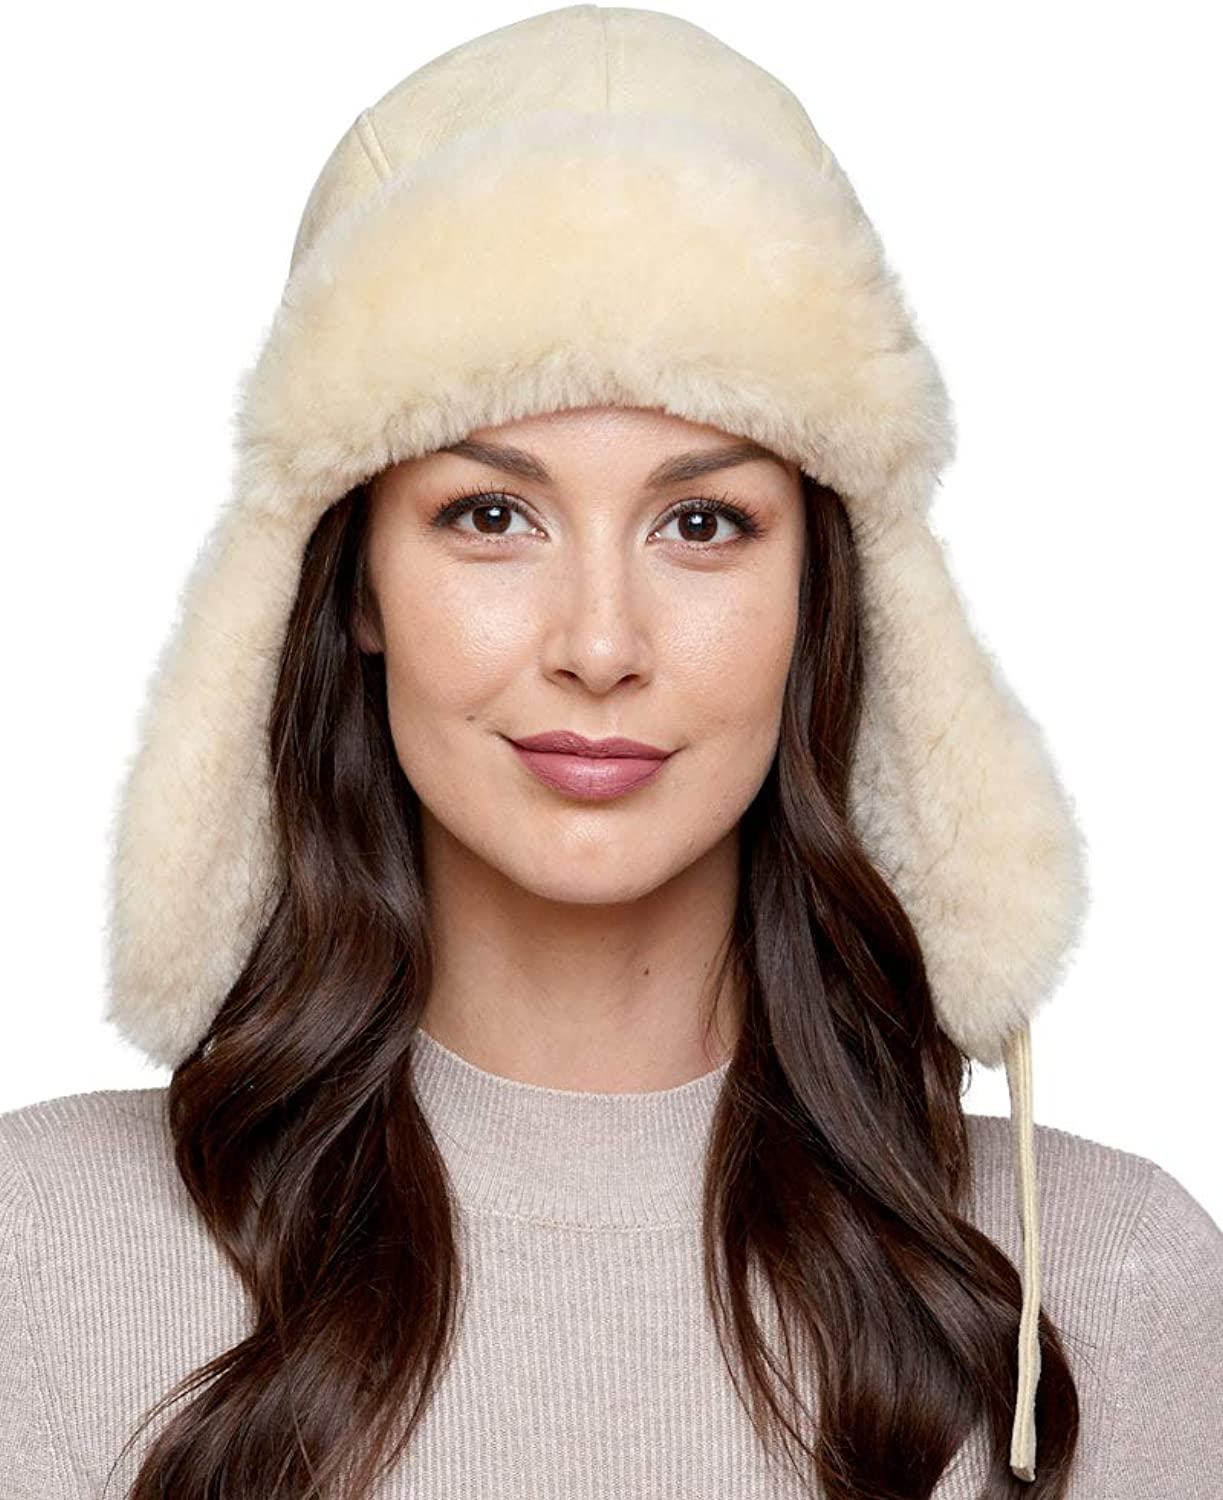 Frr Shearling Sheepskin Pilot Hat in Stone